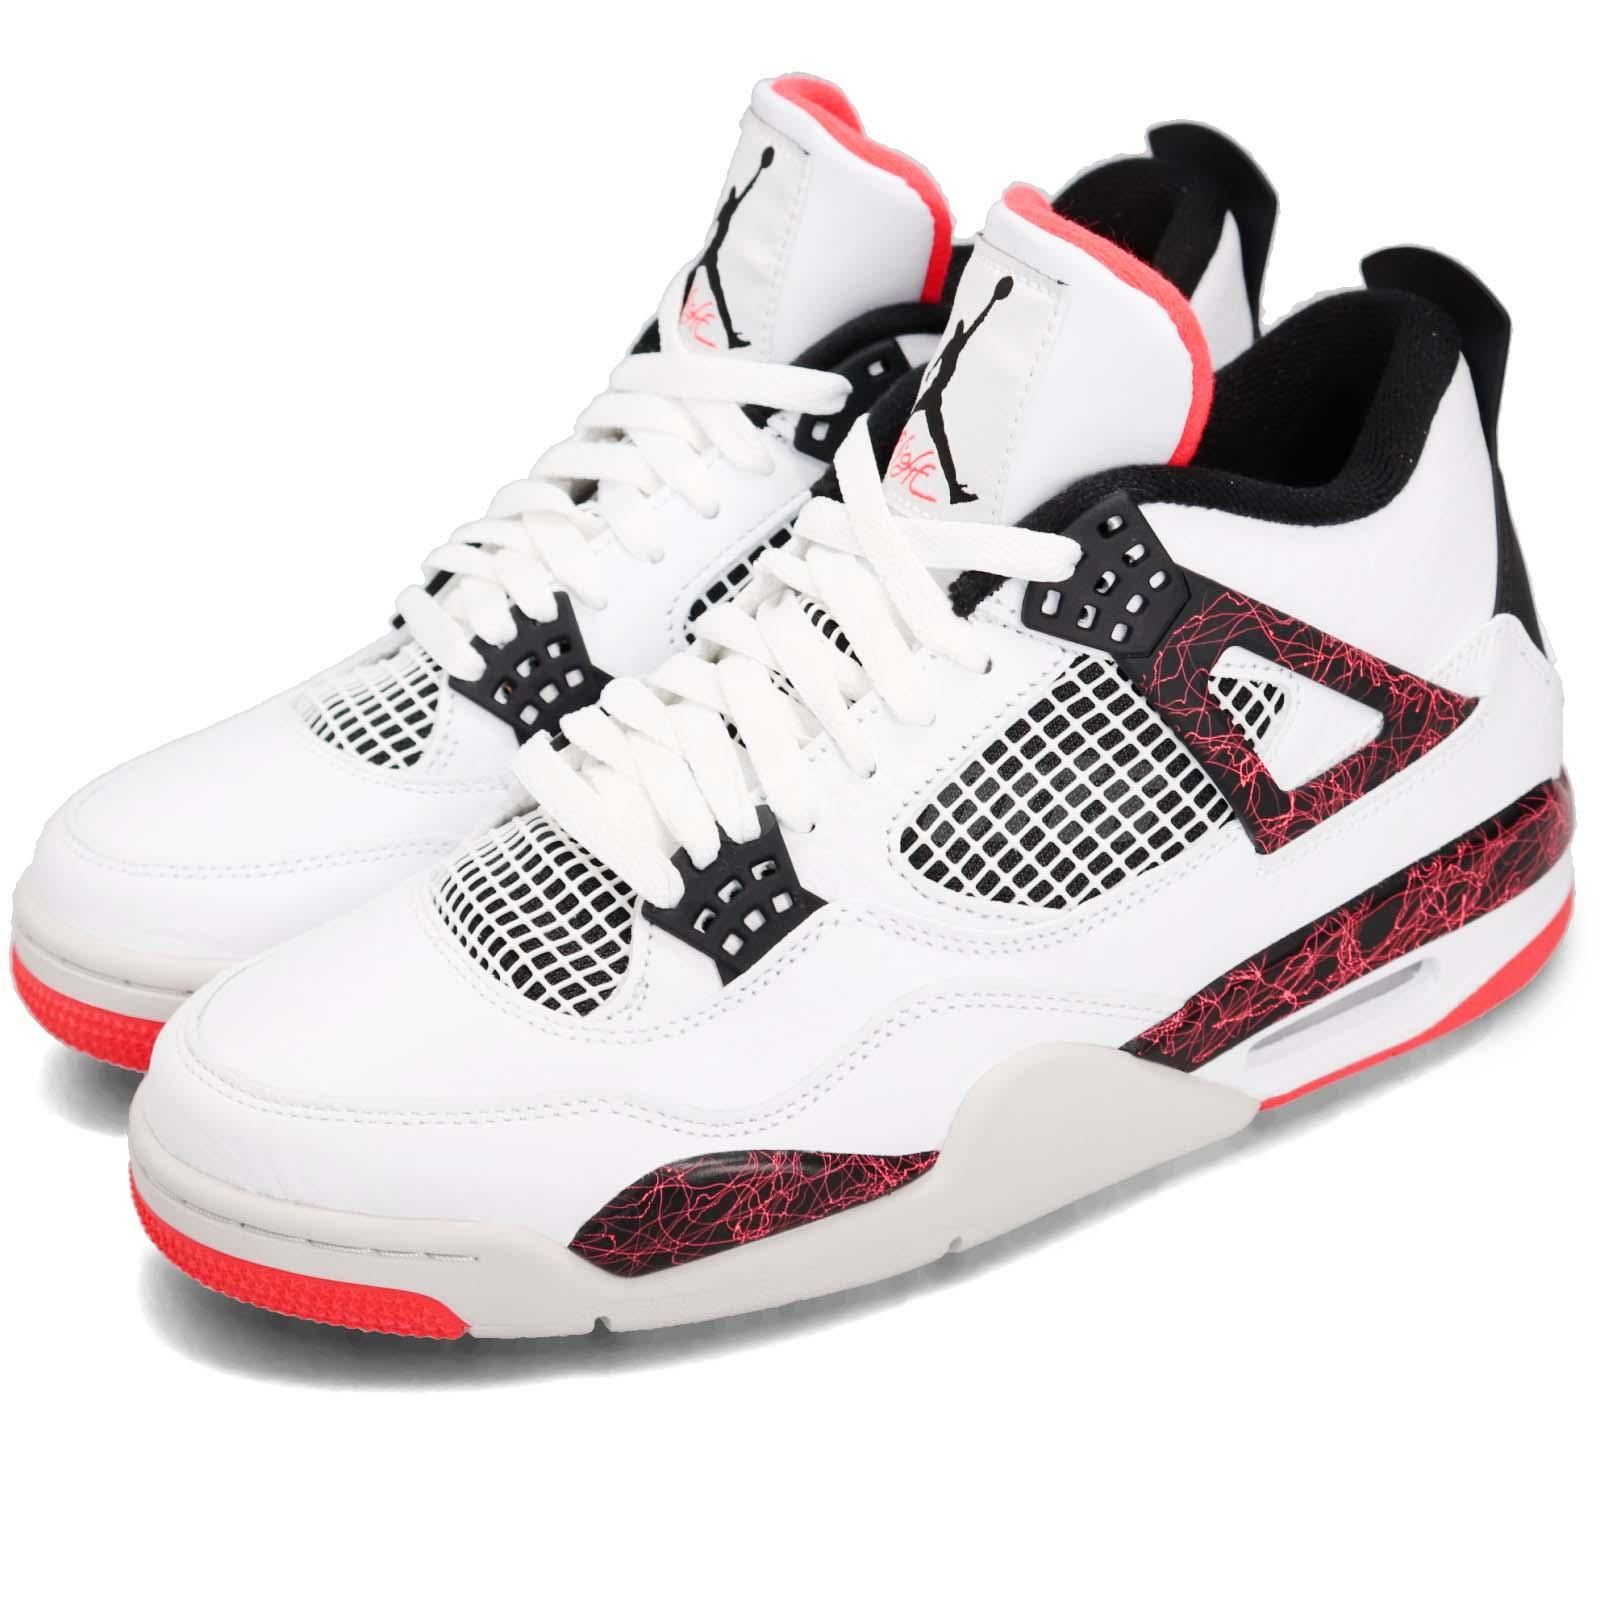 f33a2993e8c8b6 Details about Nike Air Jordan 4 Retro IV Bright Crimson Pale Citron Hot Lava  AJ4 308497-116